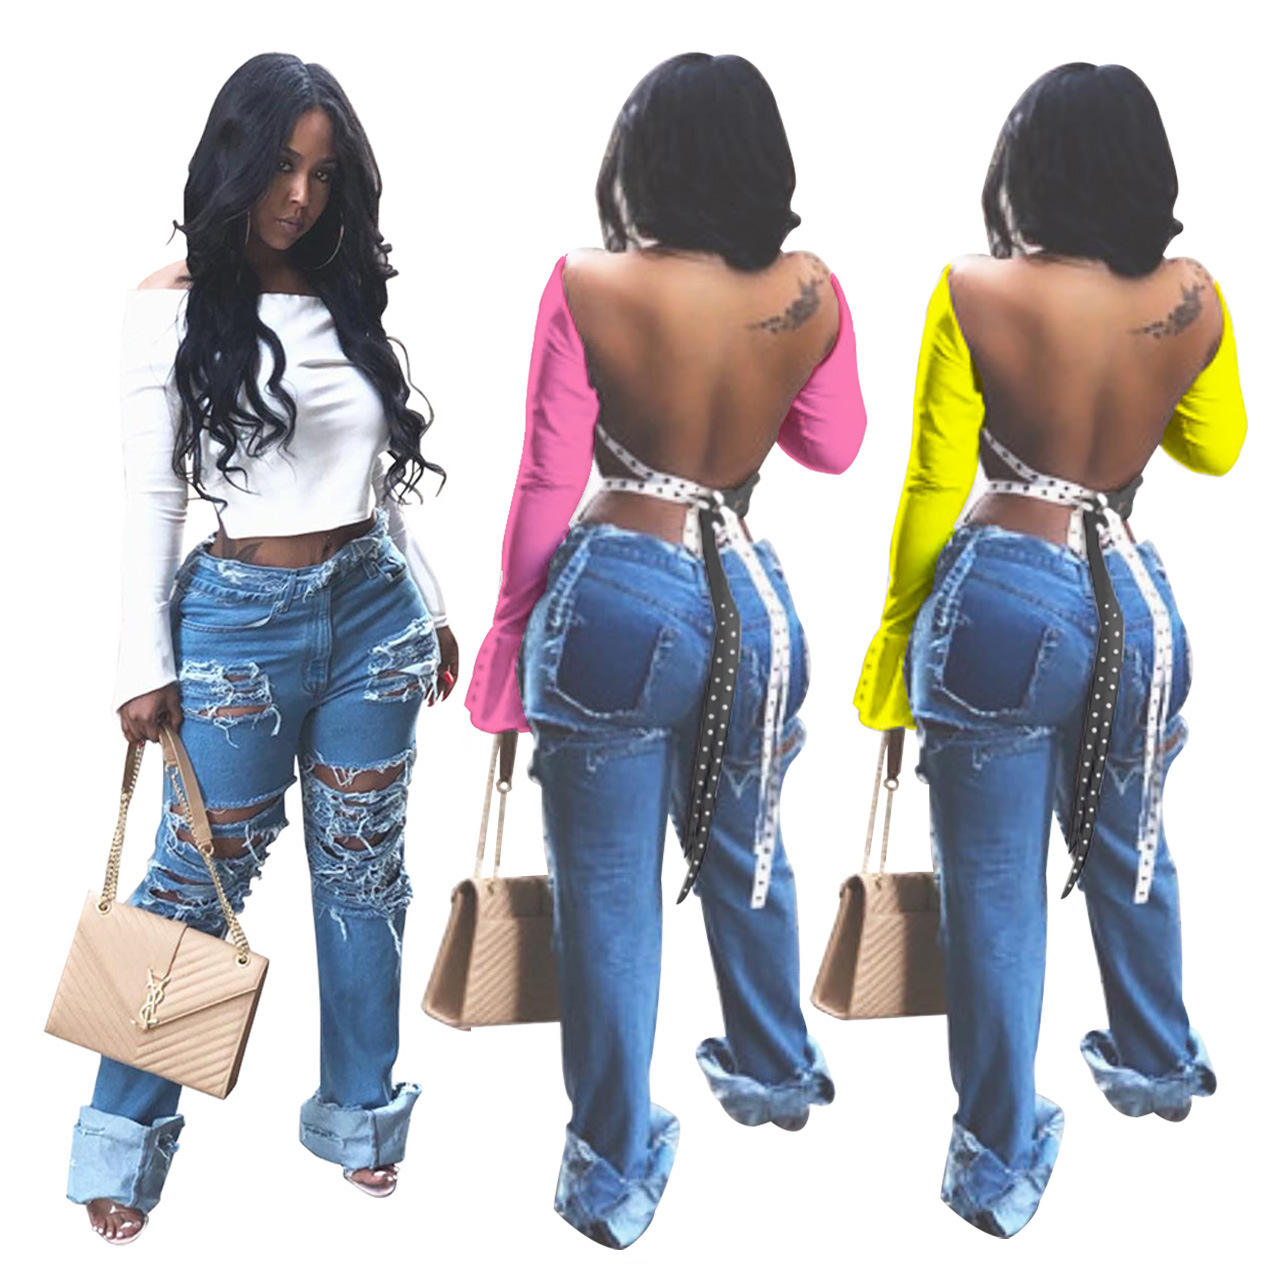 New Arrival Fashion Streetwear Cardigan Women's Tank Top Sexy Trendy Women Clothing Crop Top Backless Ladies' Blouses